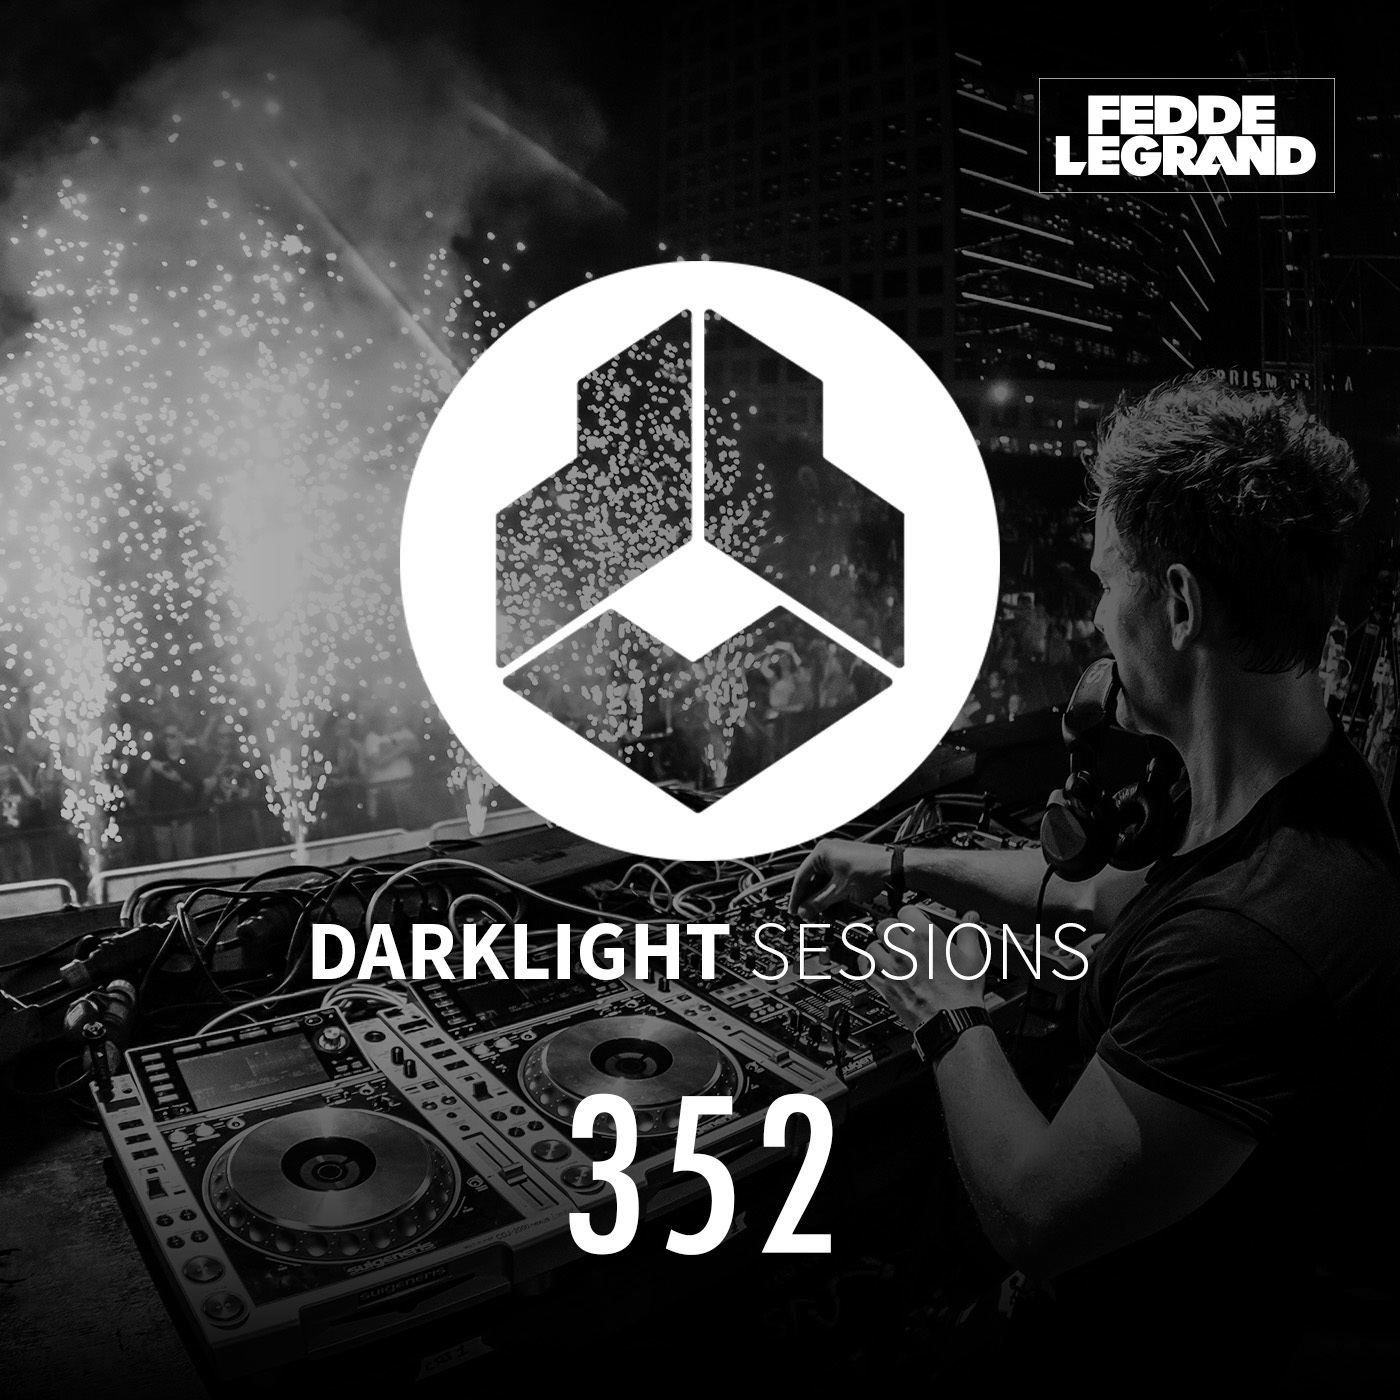 Darklight Sessions 352